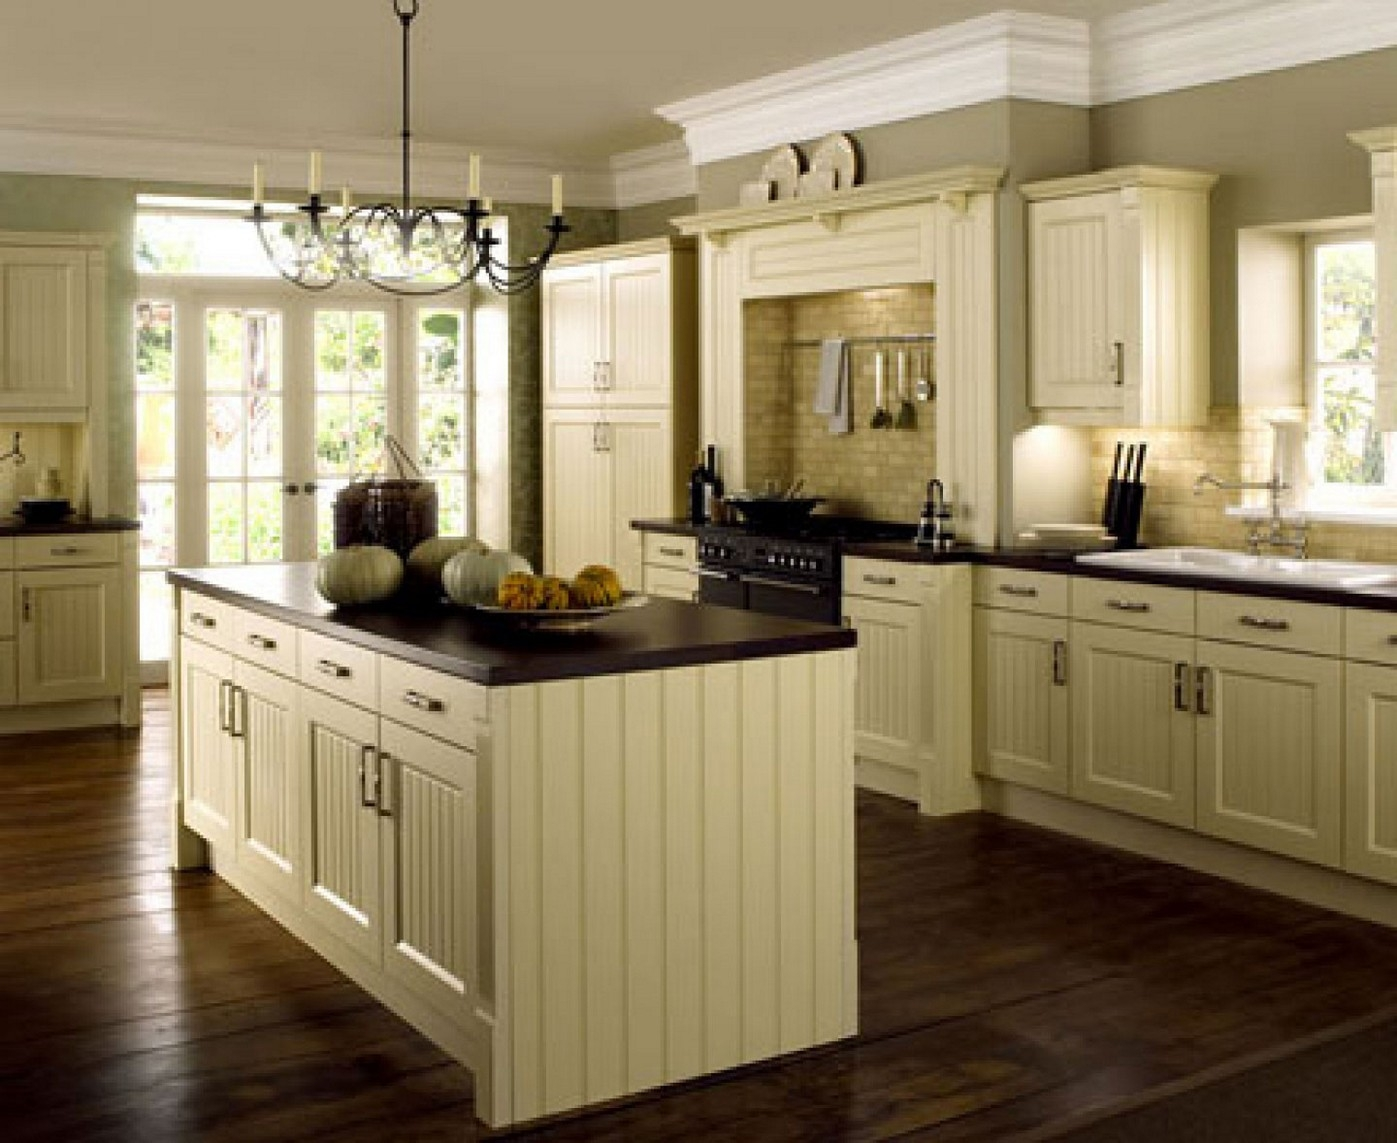 Kitchen Cabinets And Trim Color